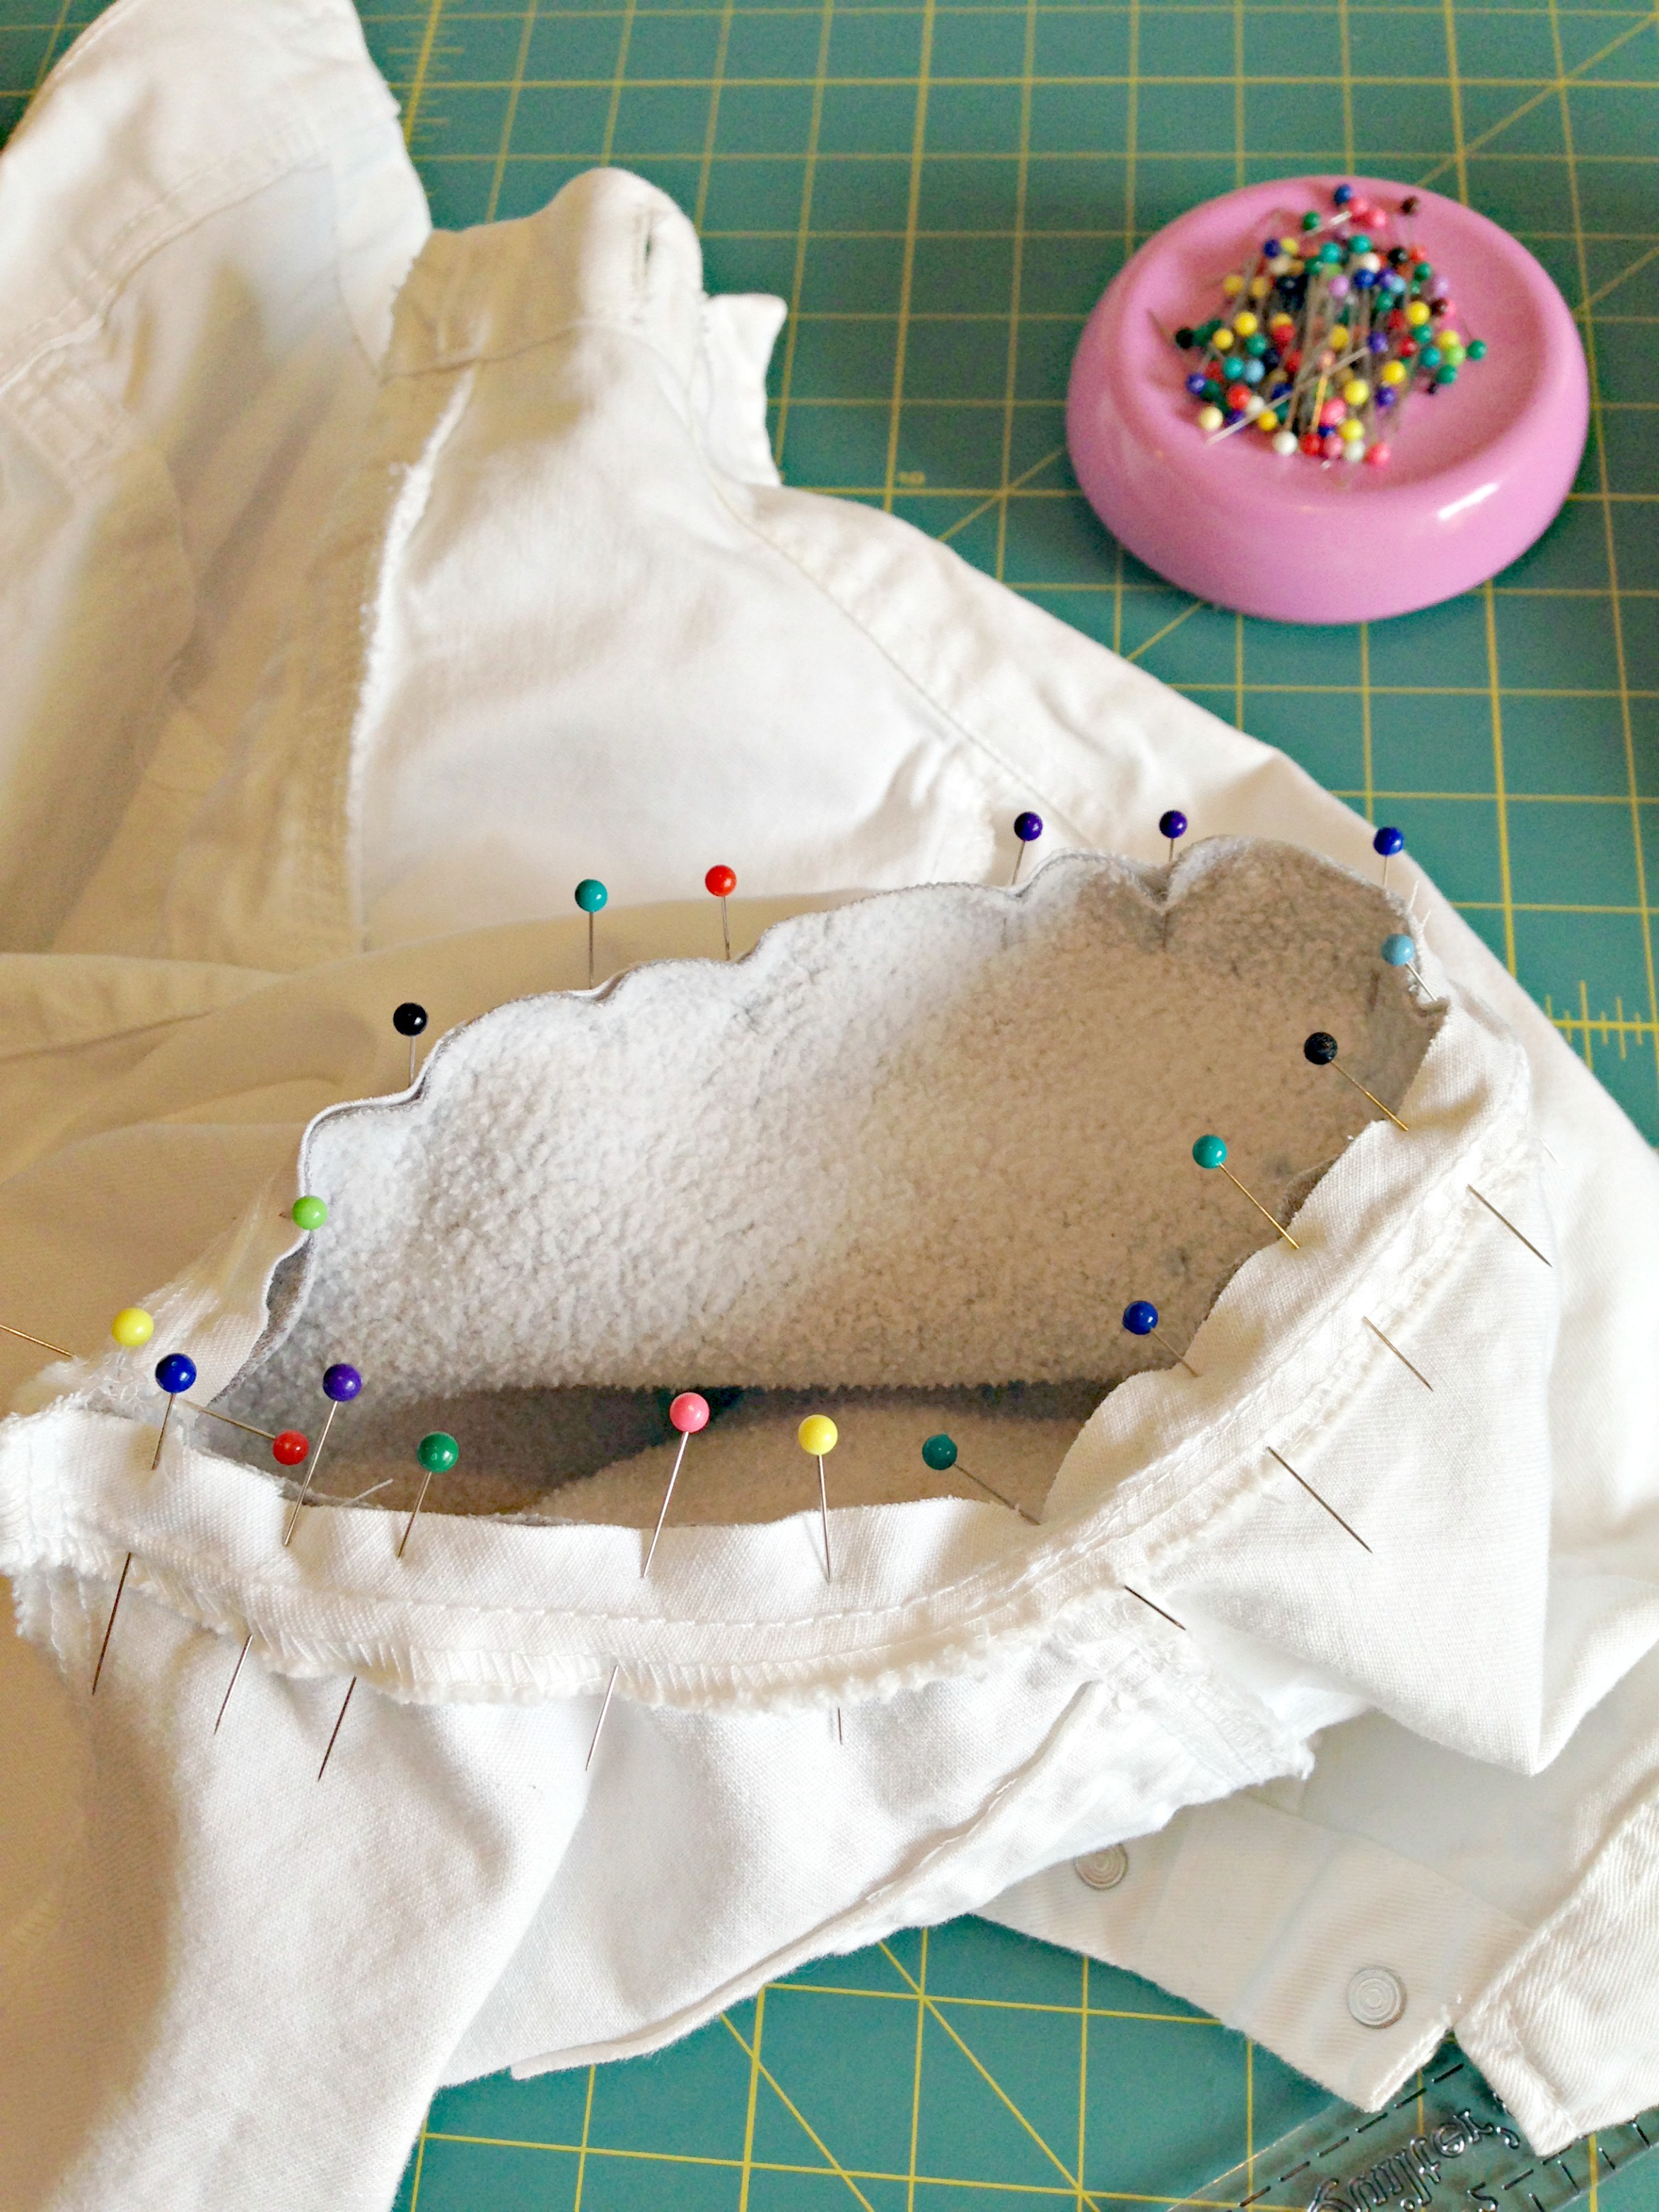 Refashioned Jean Jacket with Sweatshirt Sleeves and Hoodie - Sew sleeve to armhole